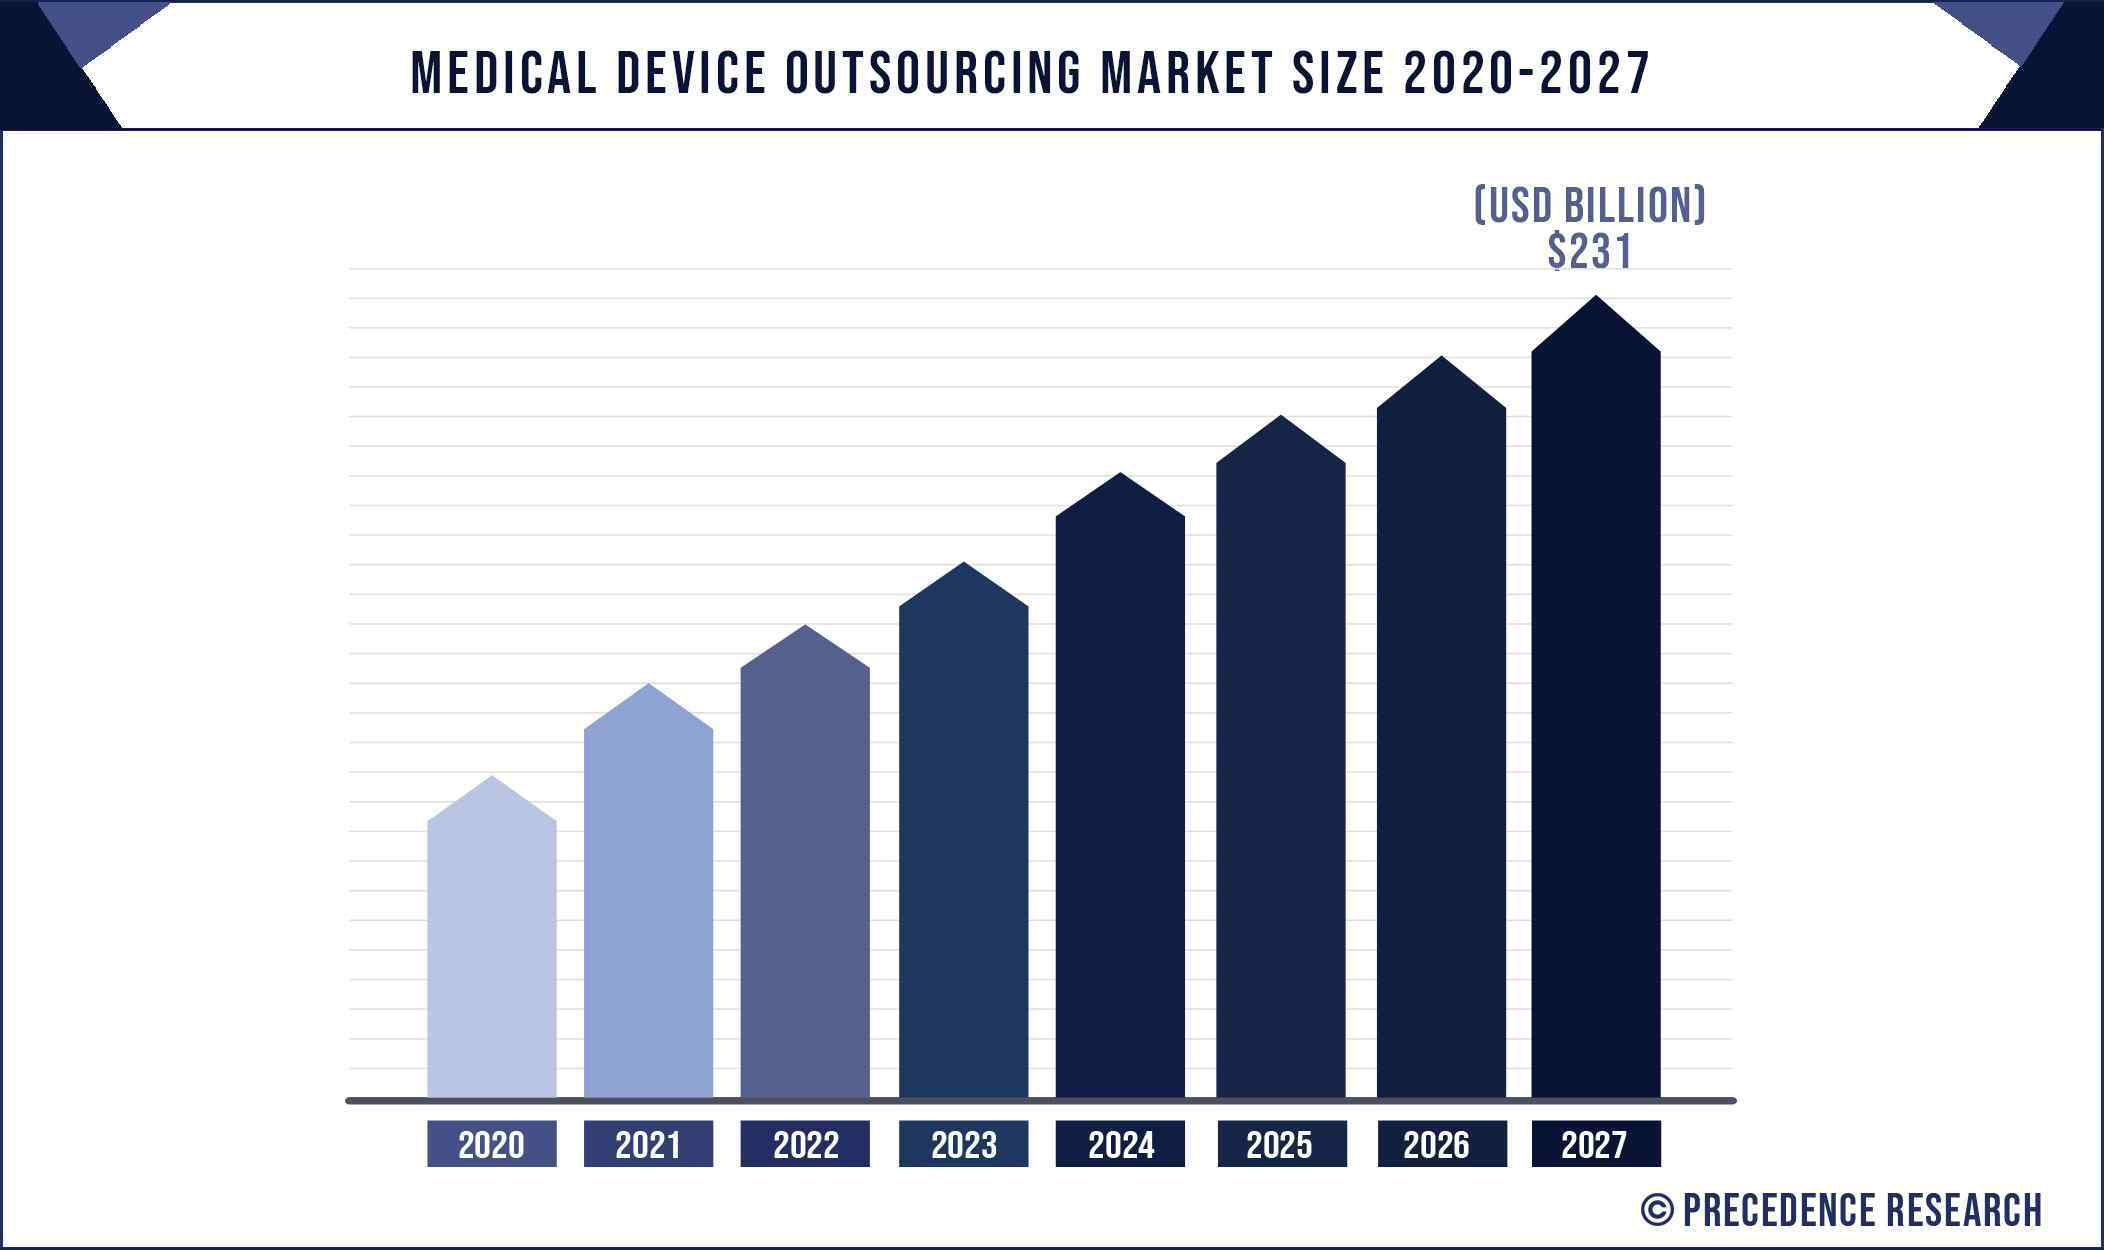 Medical Device Outsourcing Market Size 2020 to 2027